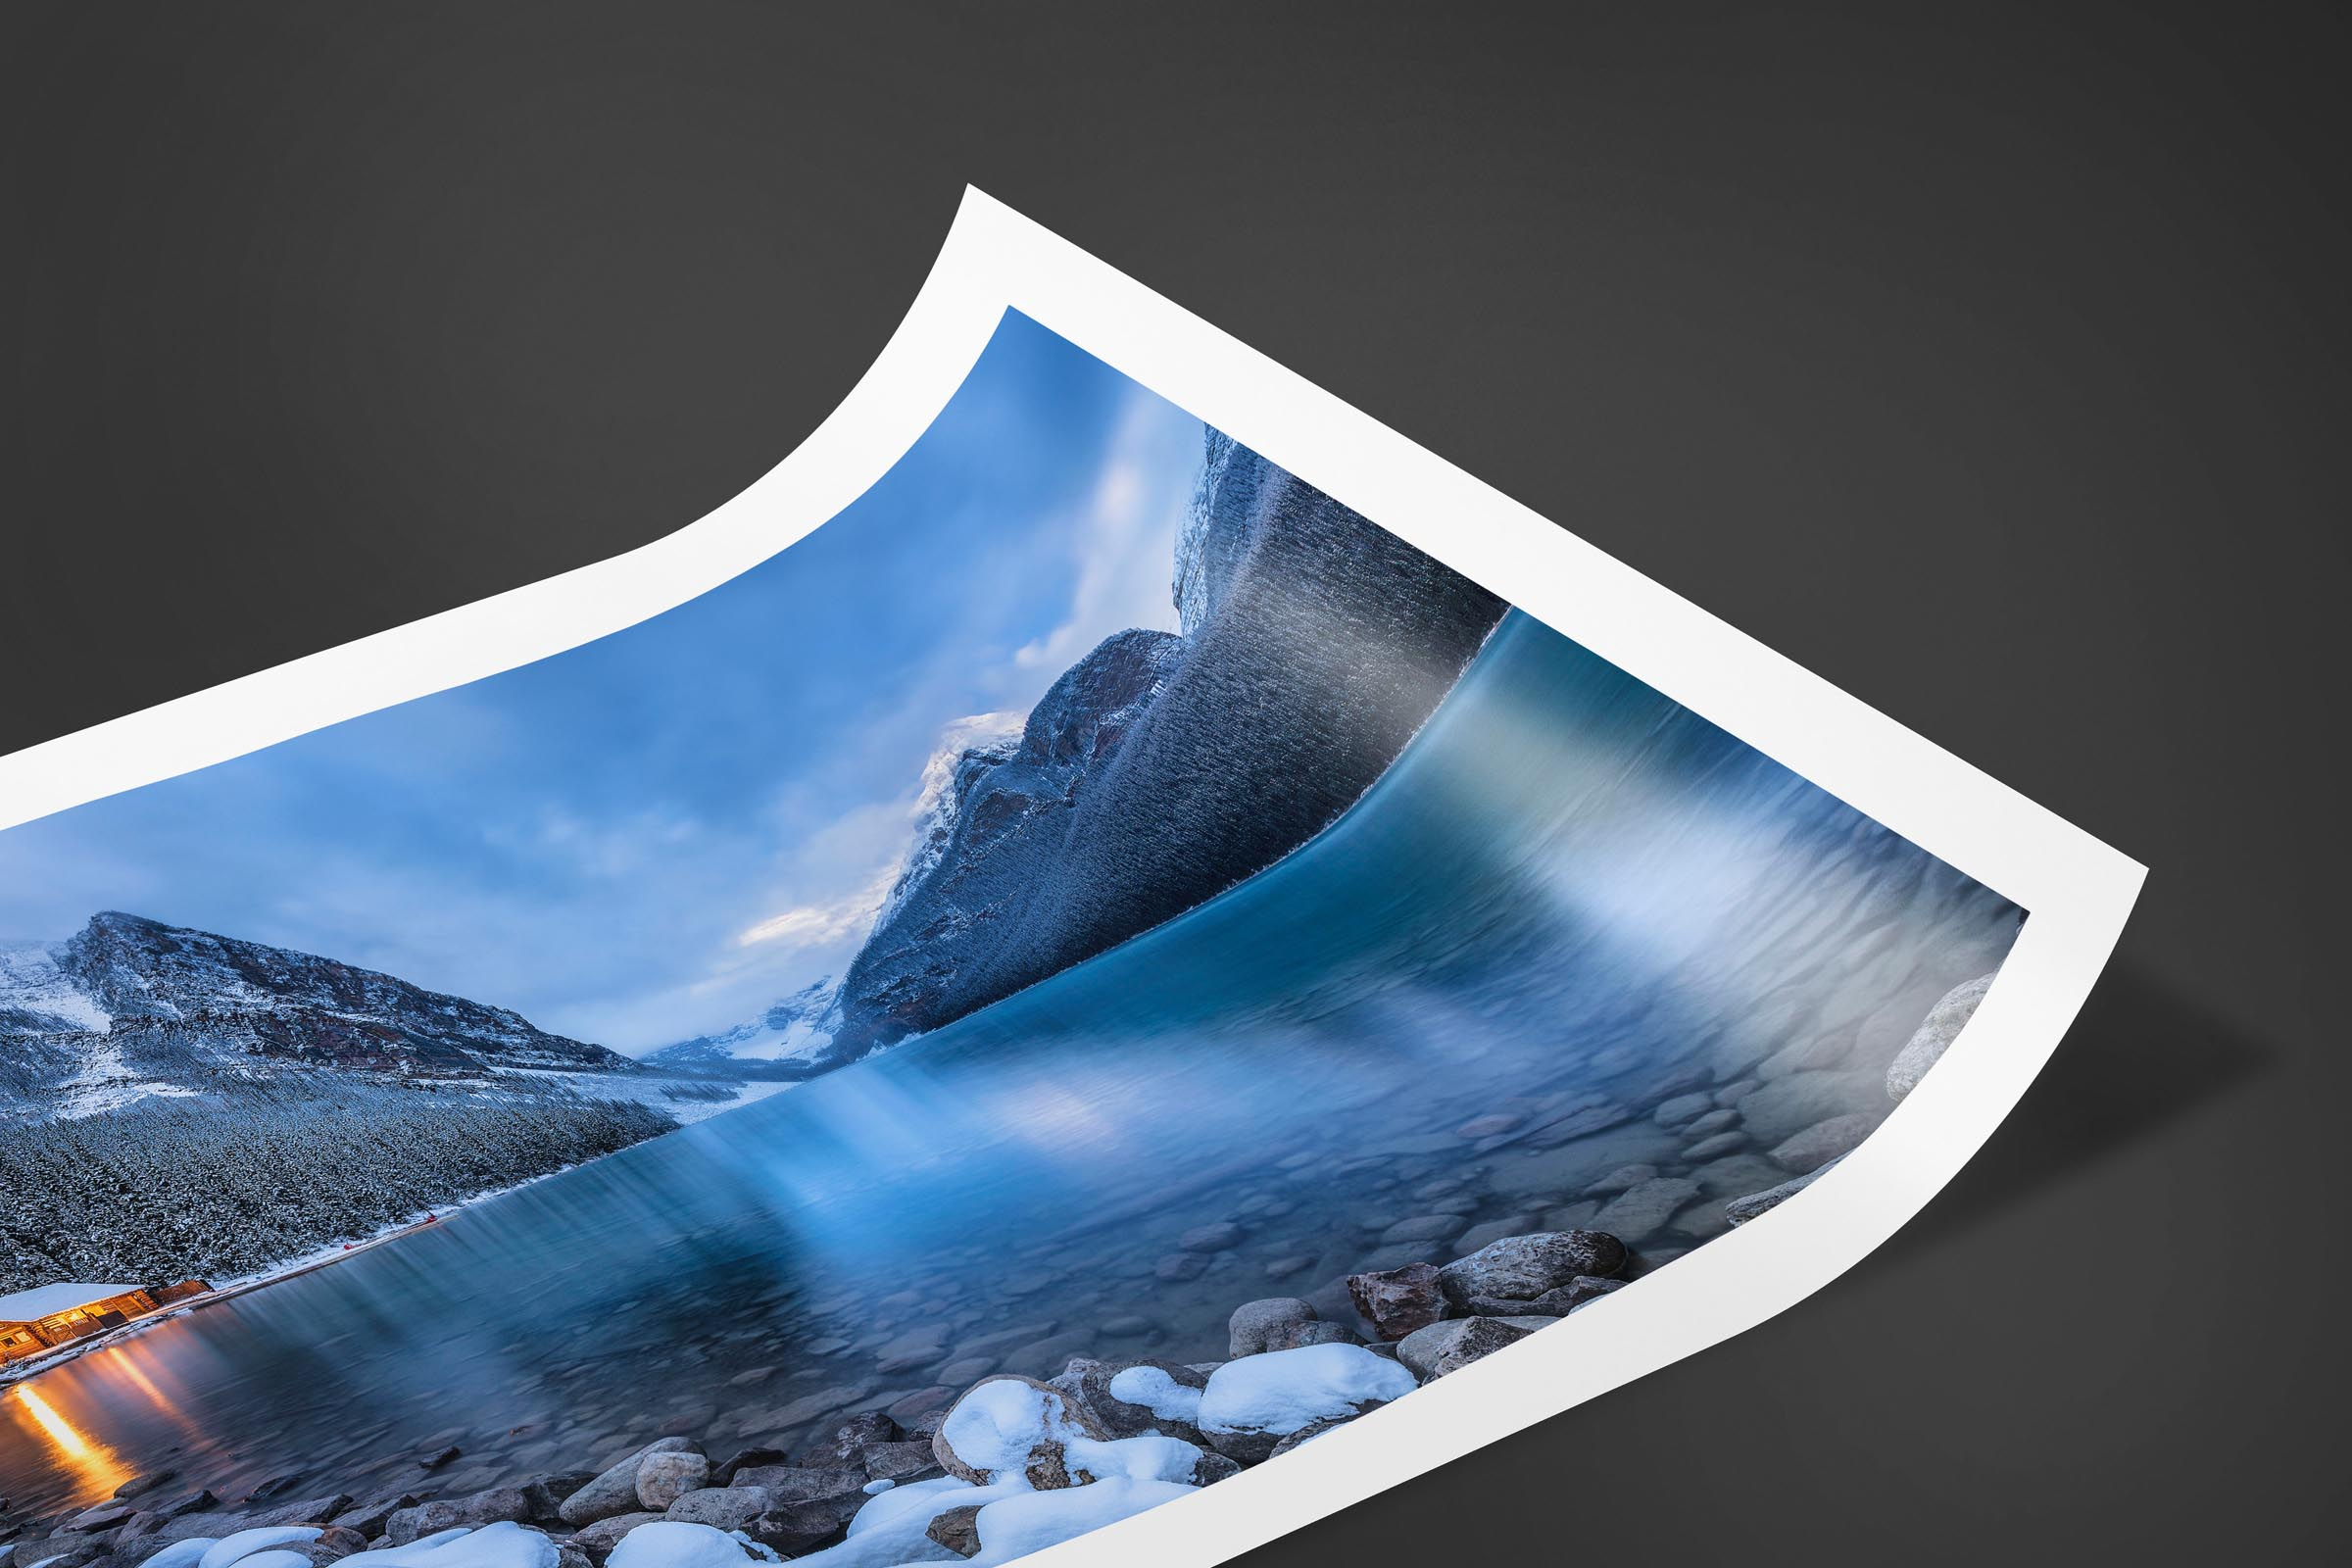 Fine art limited edition print of Lake Louise in Banff, Canada by Brent Goldman Photography